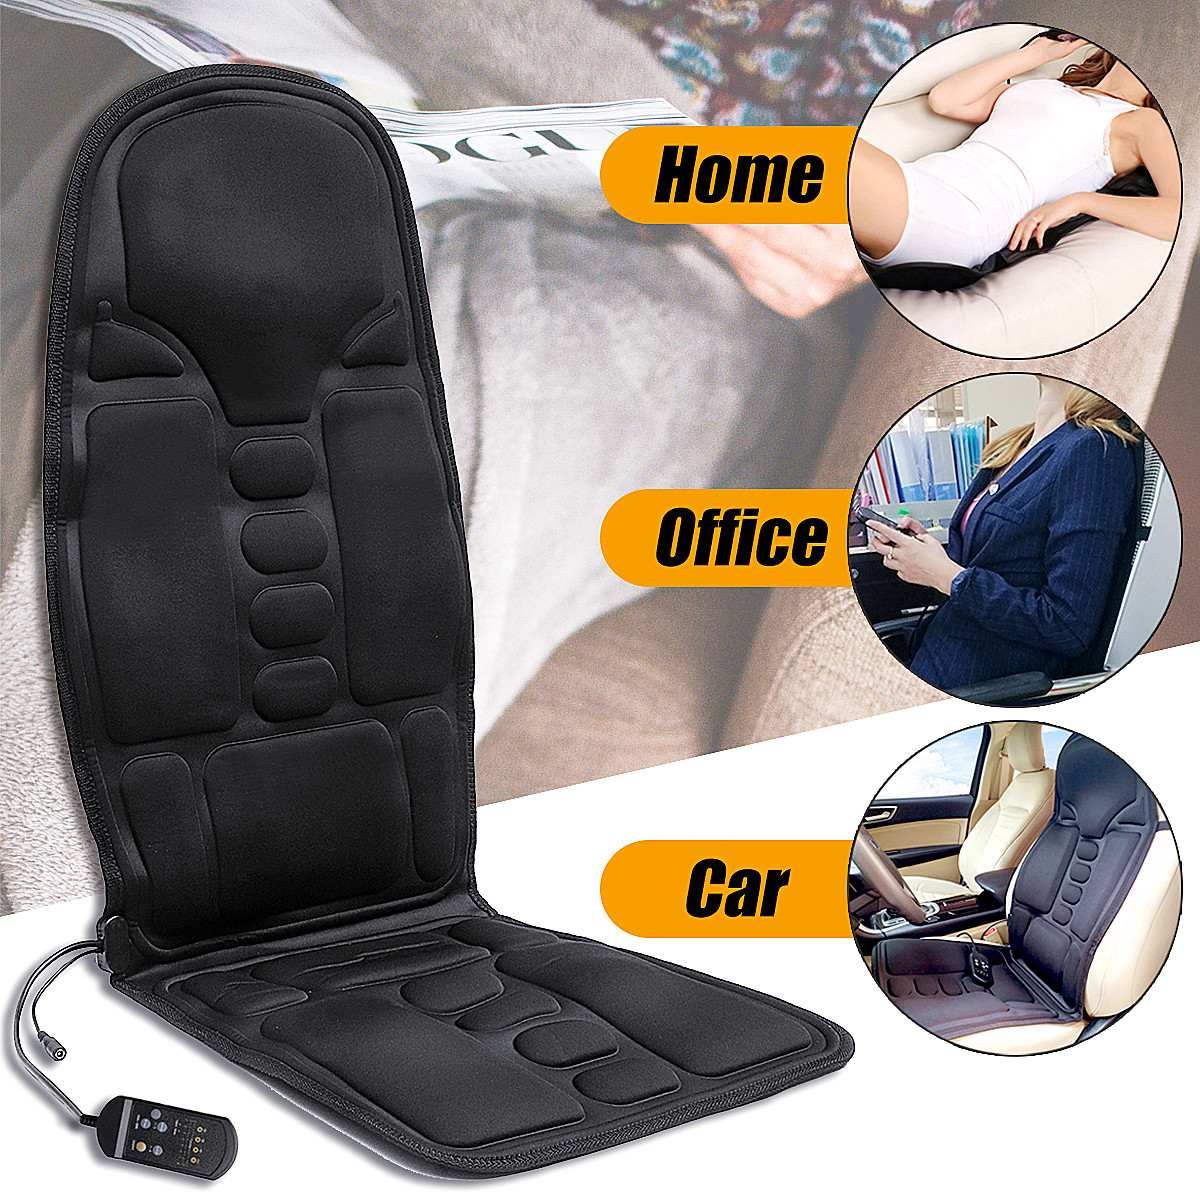 Electric Mulifunction Back Heated Massage Car Seat Home Office Cushion Car Seat Chair Massager Lumbar Back Neck Pad Relaxation